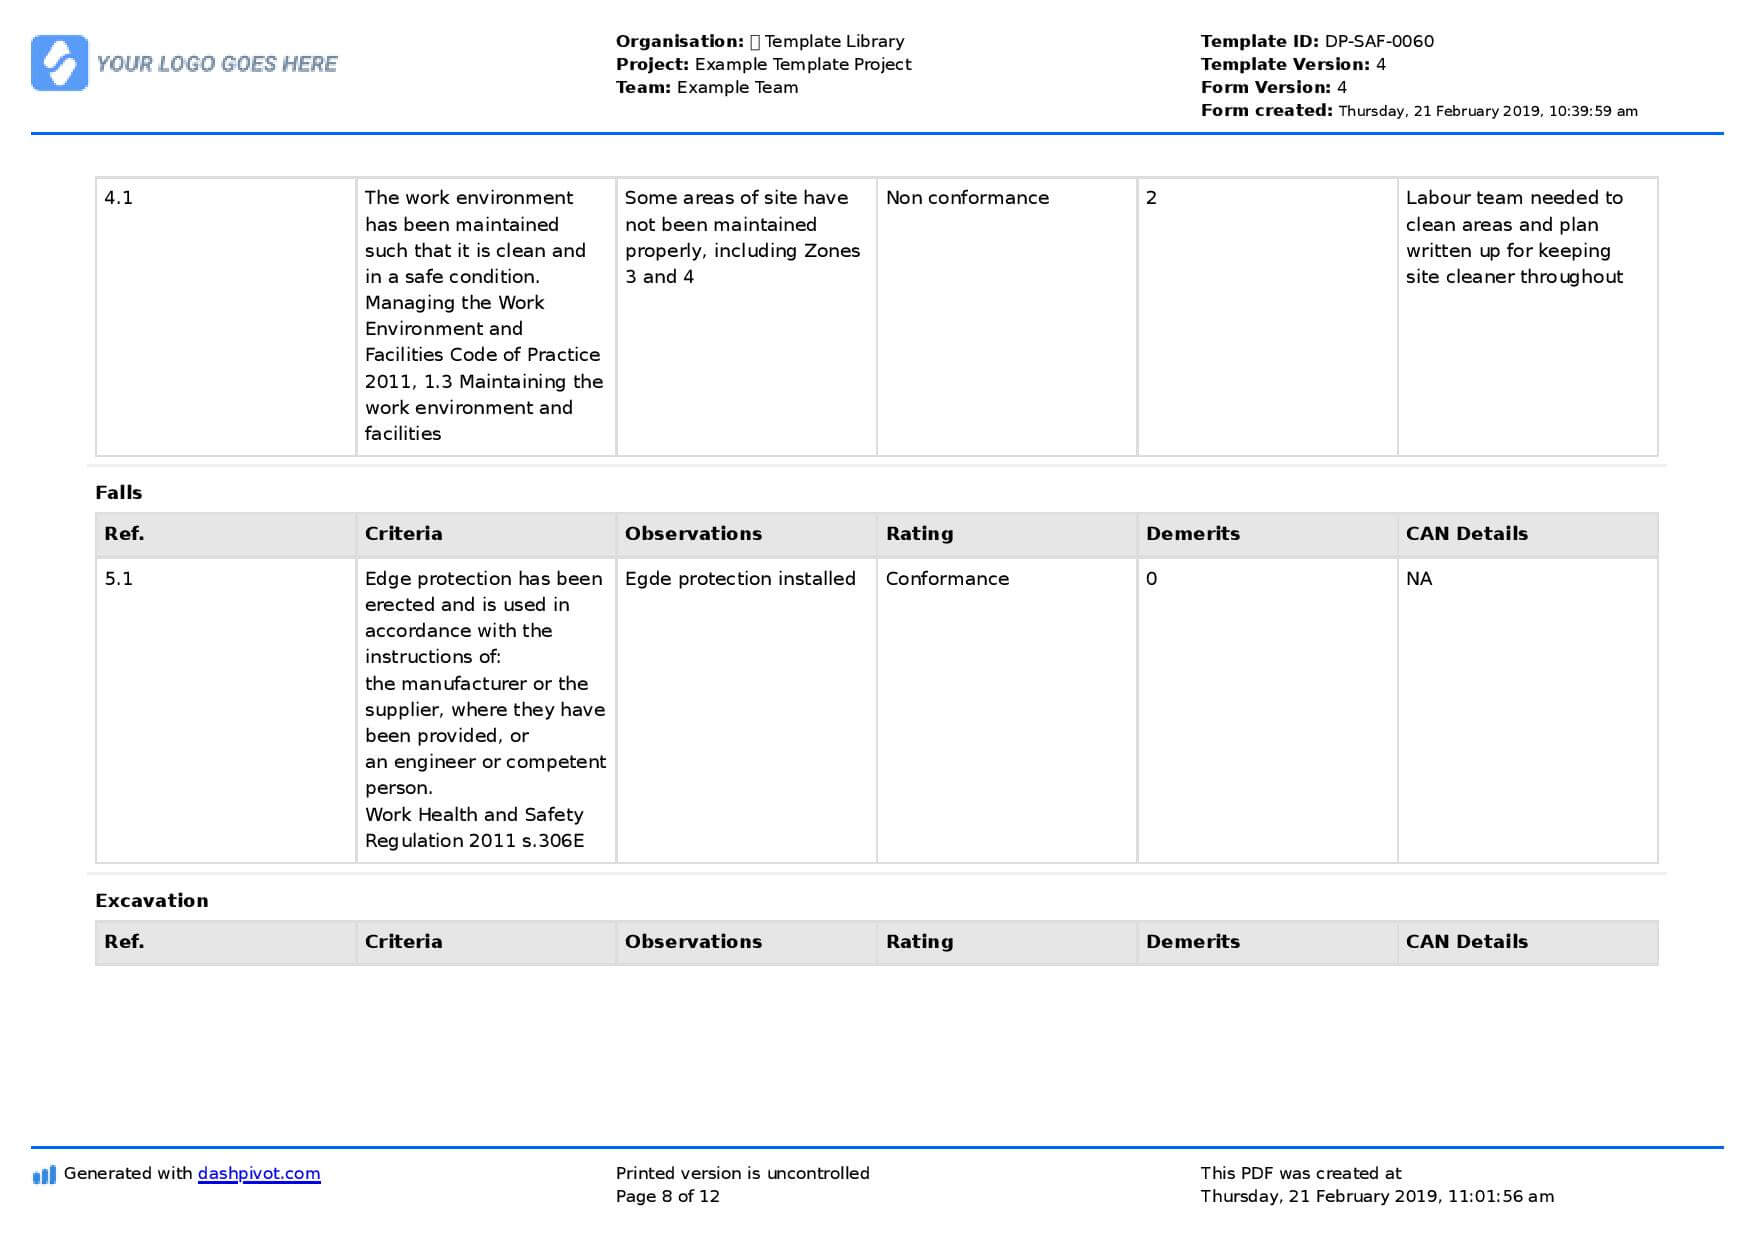 Site Inspection Report: Free Template, Sample And A Proven Regarding Engineering Inspection Report Template